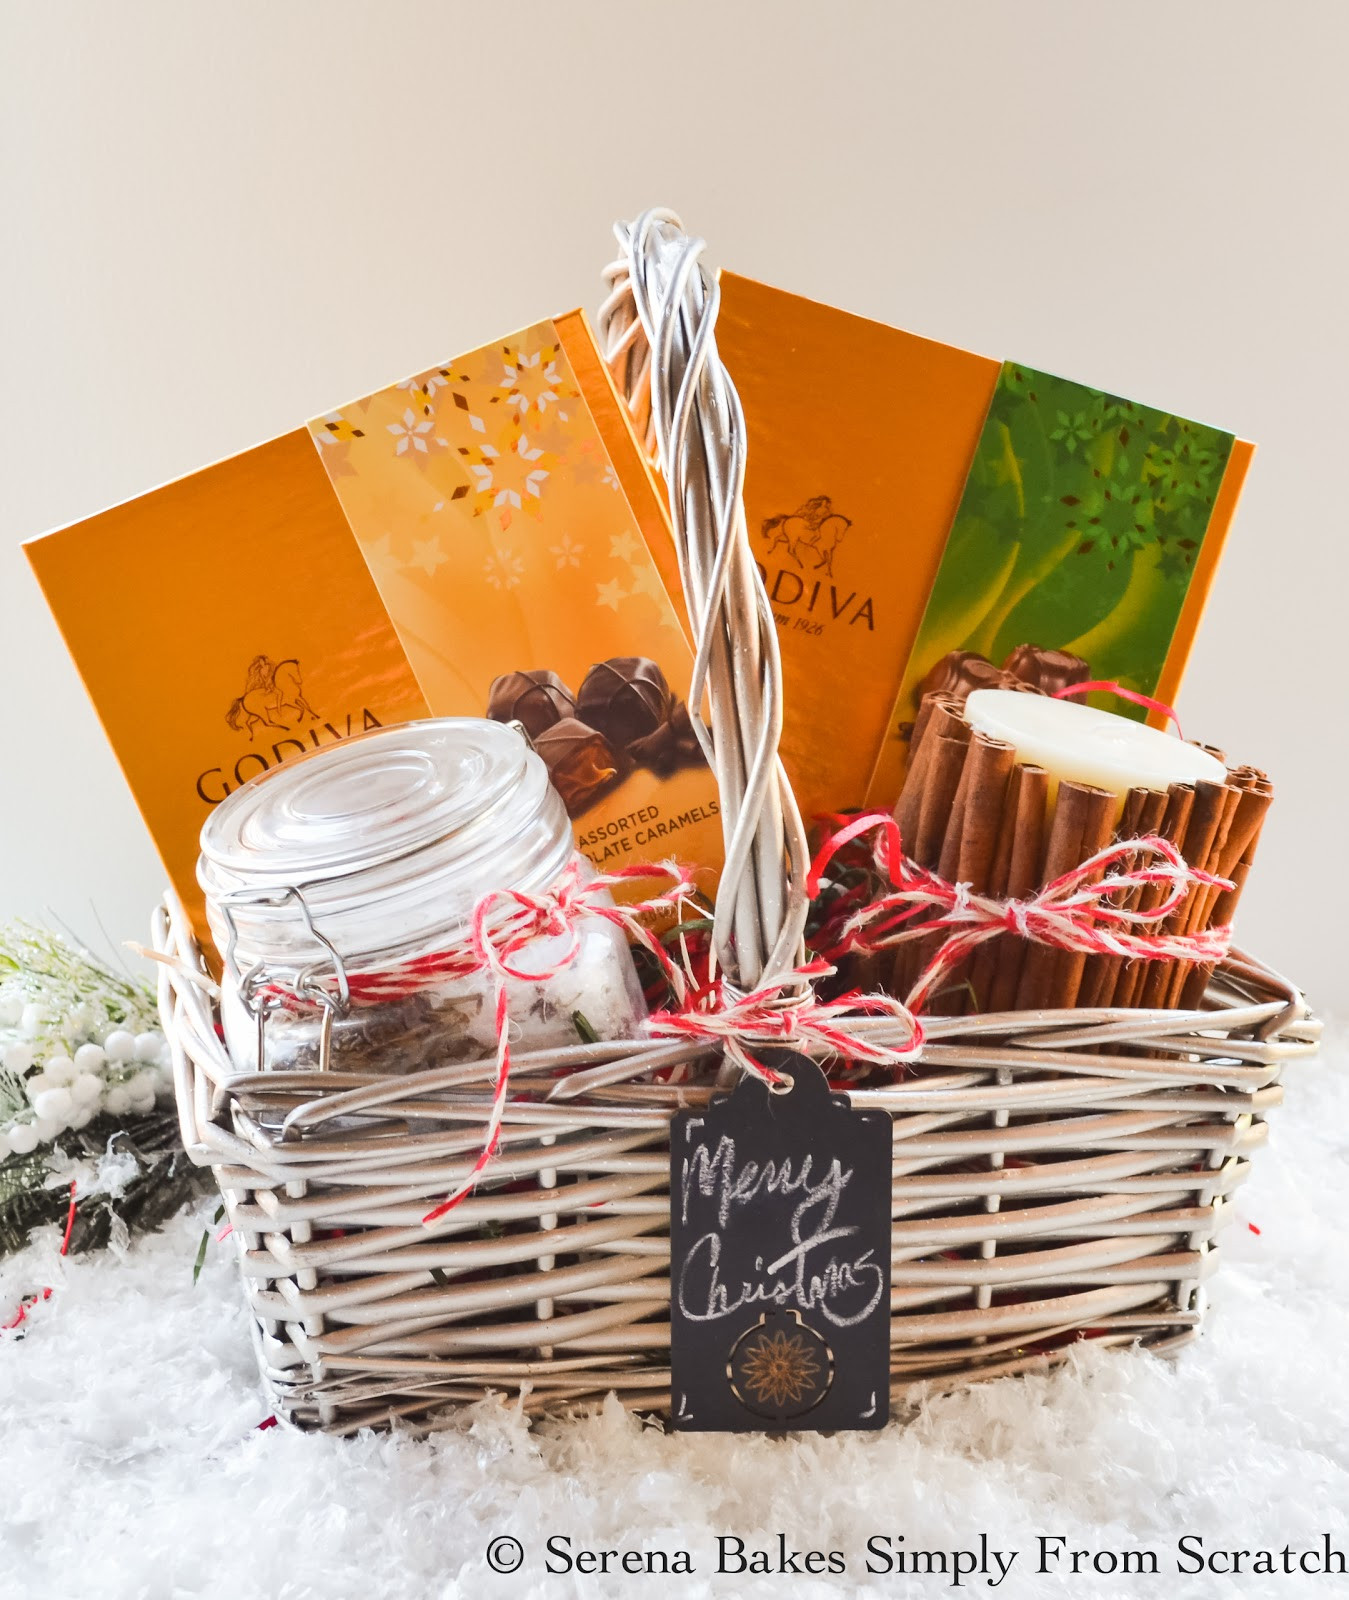 Best ideas about Basket Gift Ideas . Save or Pin Holiday Gift Basket Ideas Now.